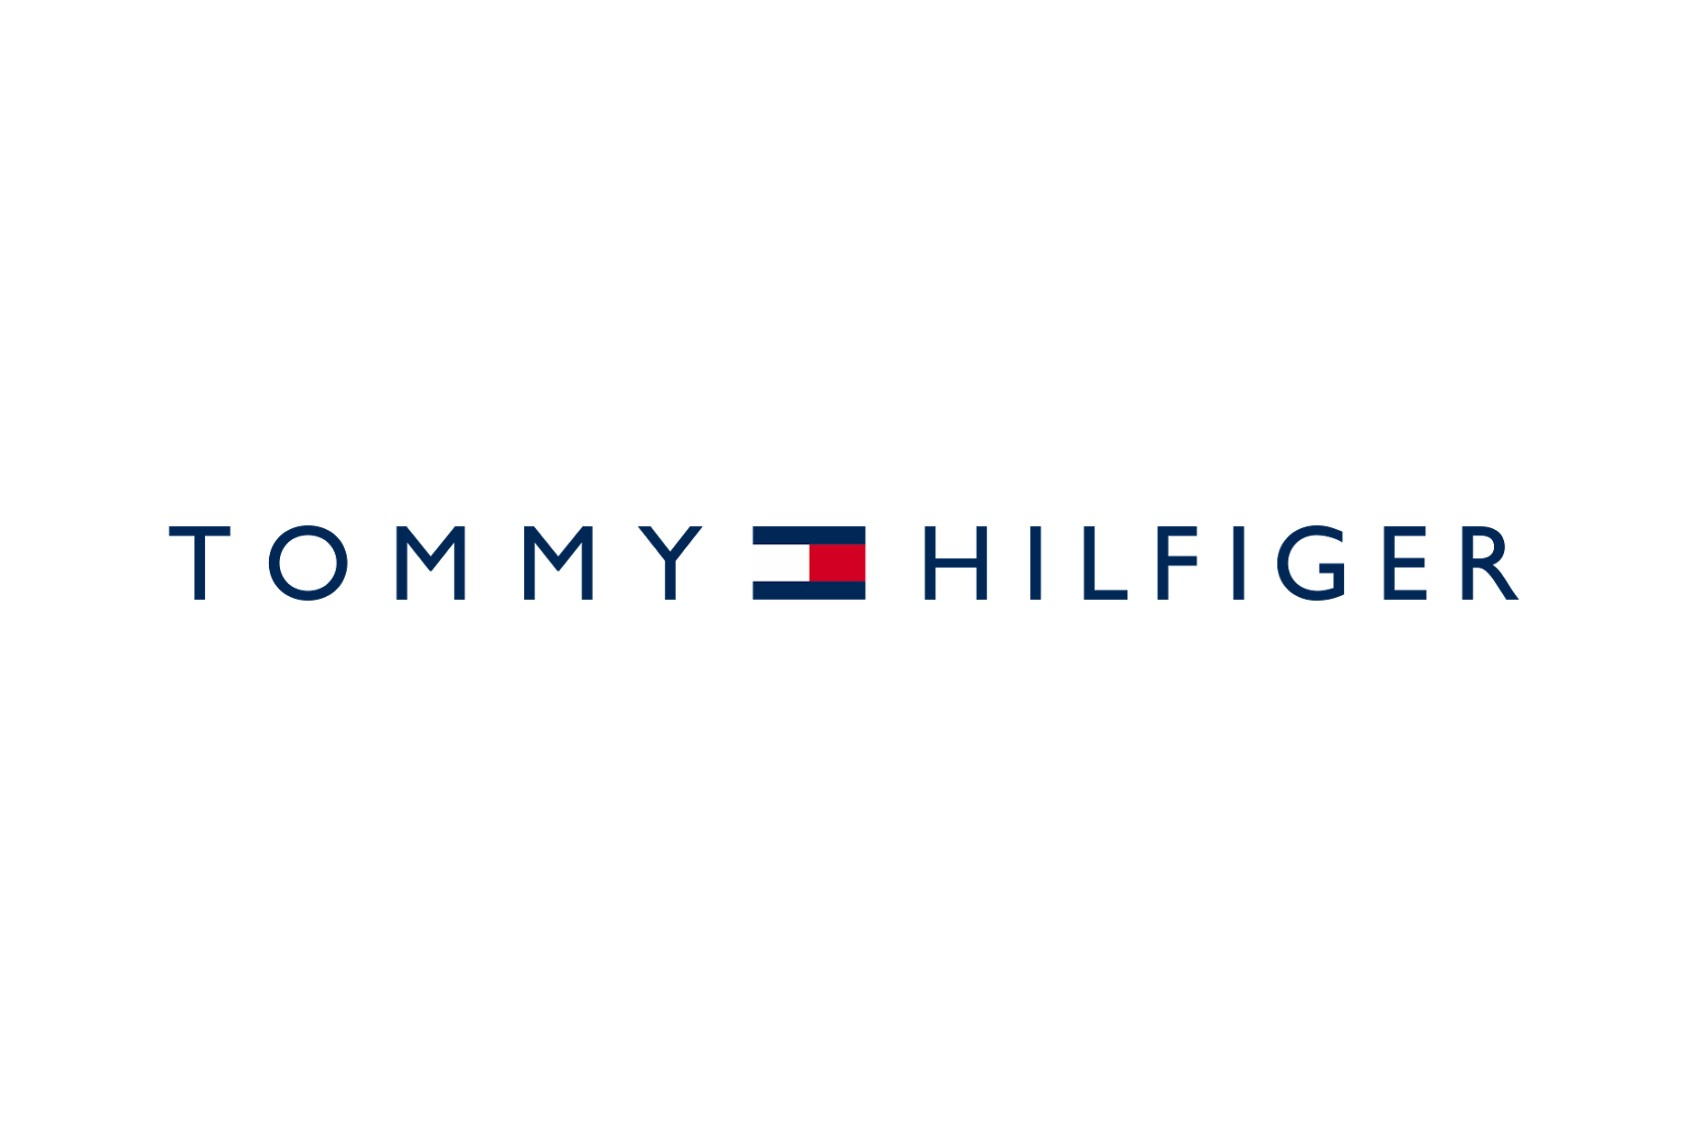 Tommy Hilfiger @ Iconic